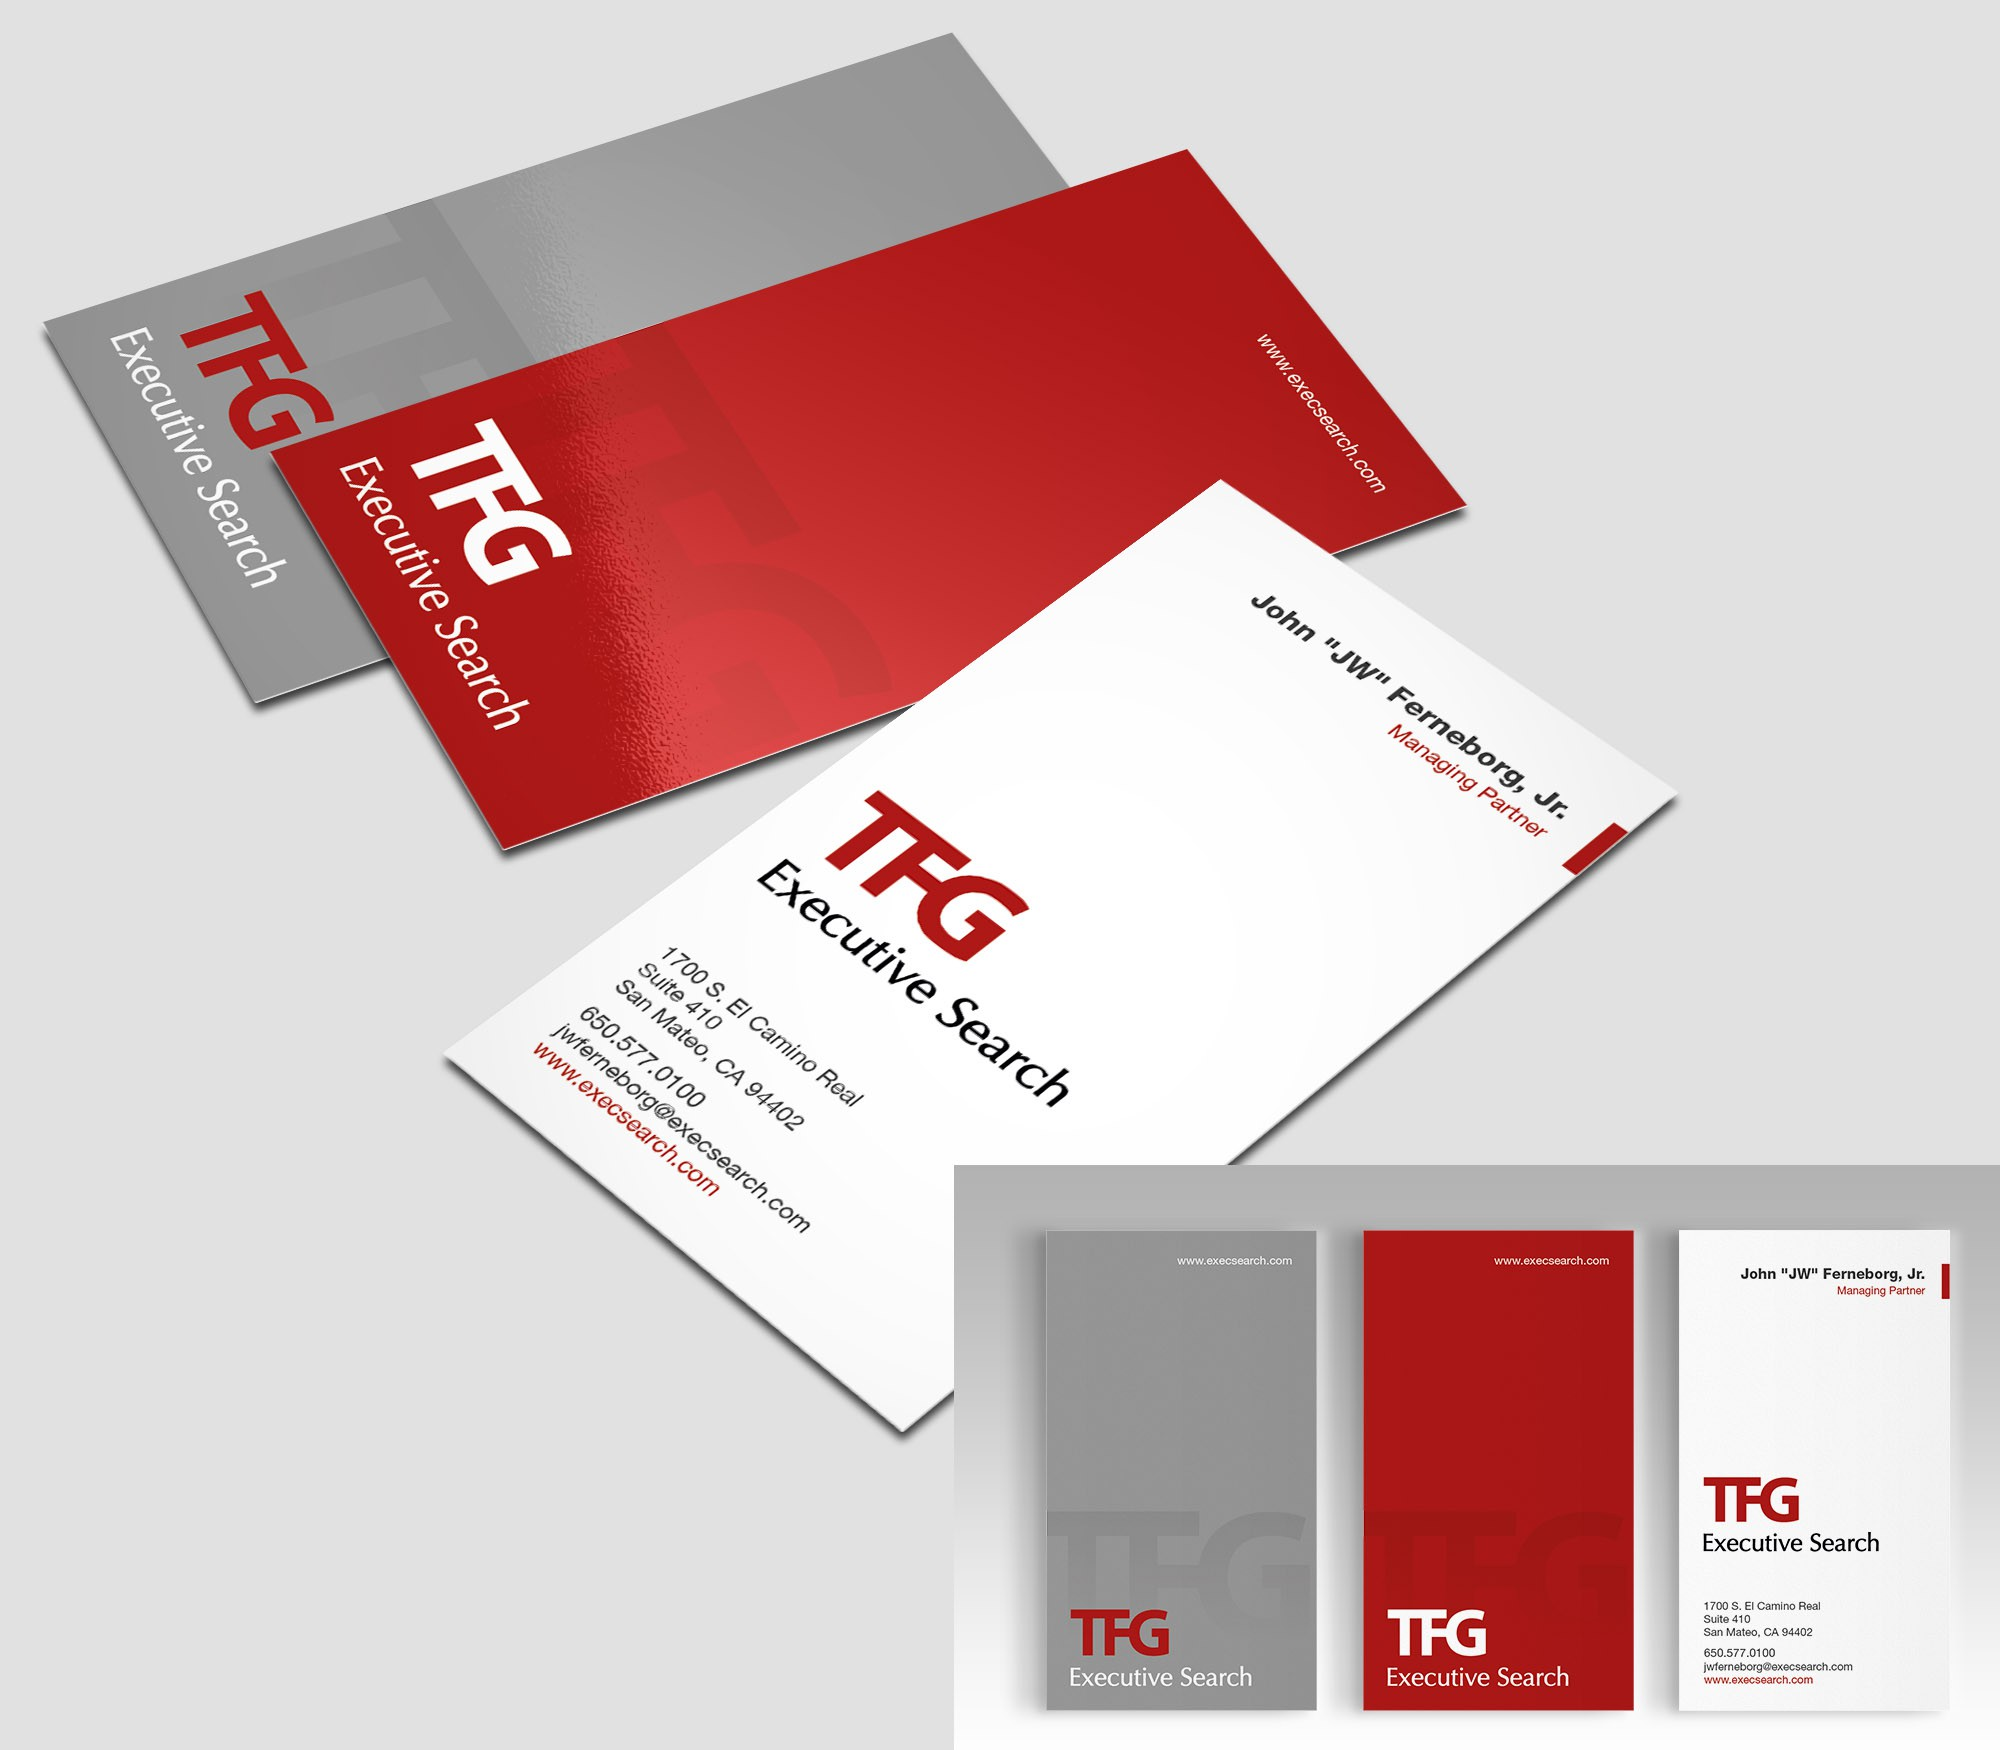 business card for TFG Executive Search